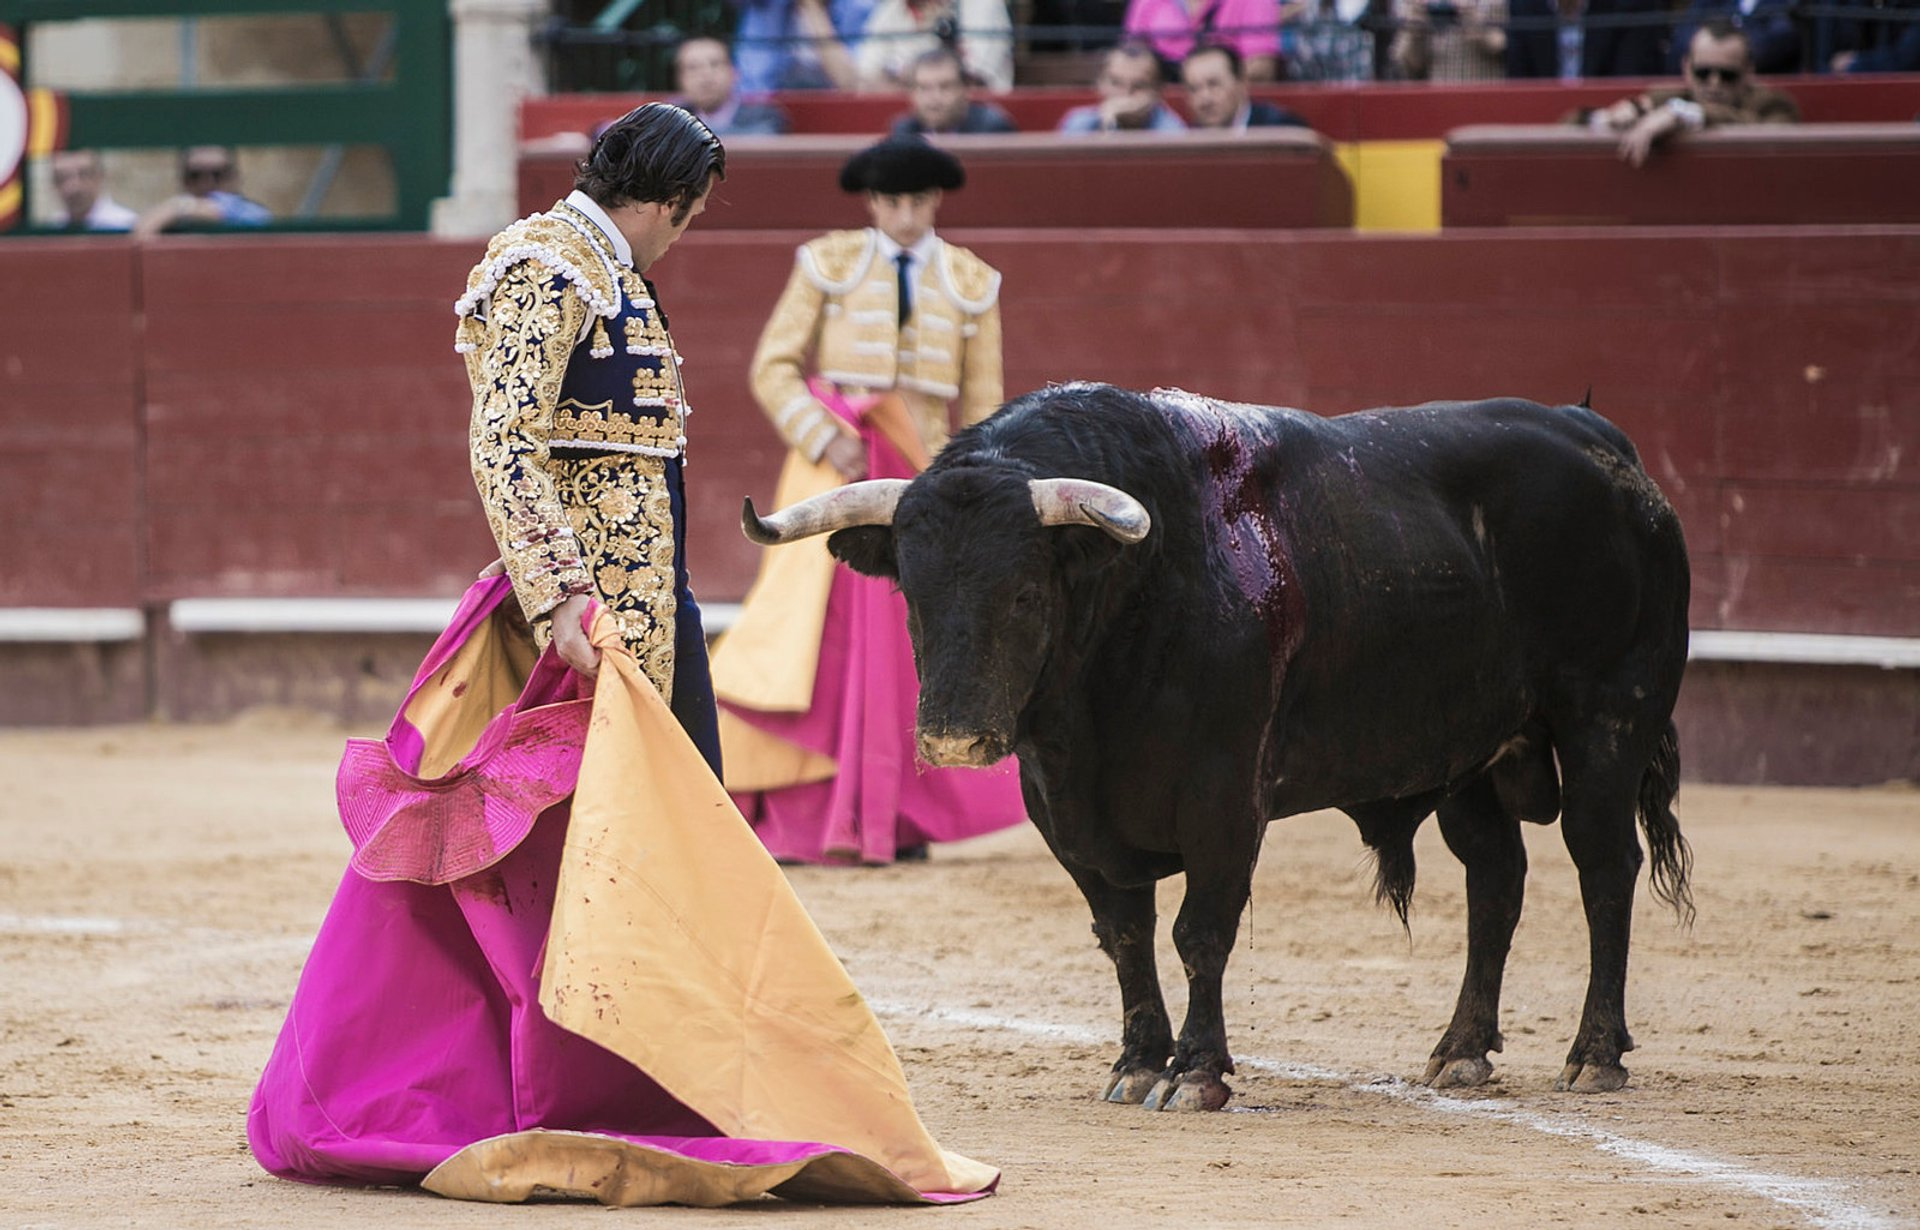 Corrida de Toros (Bullfighting) in Valencia 2020 - Best Time